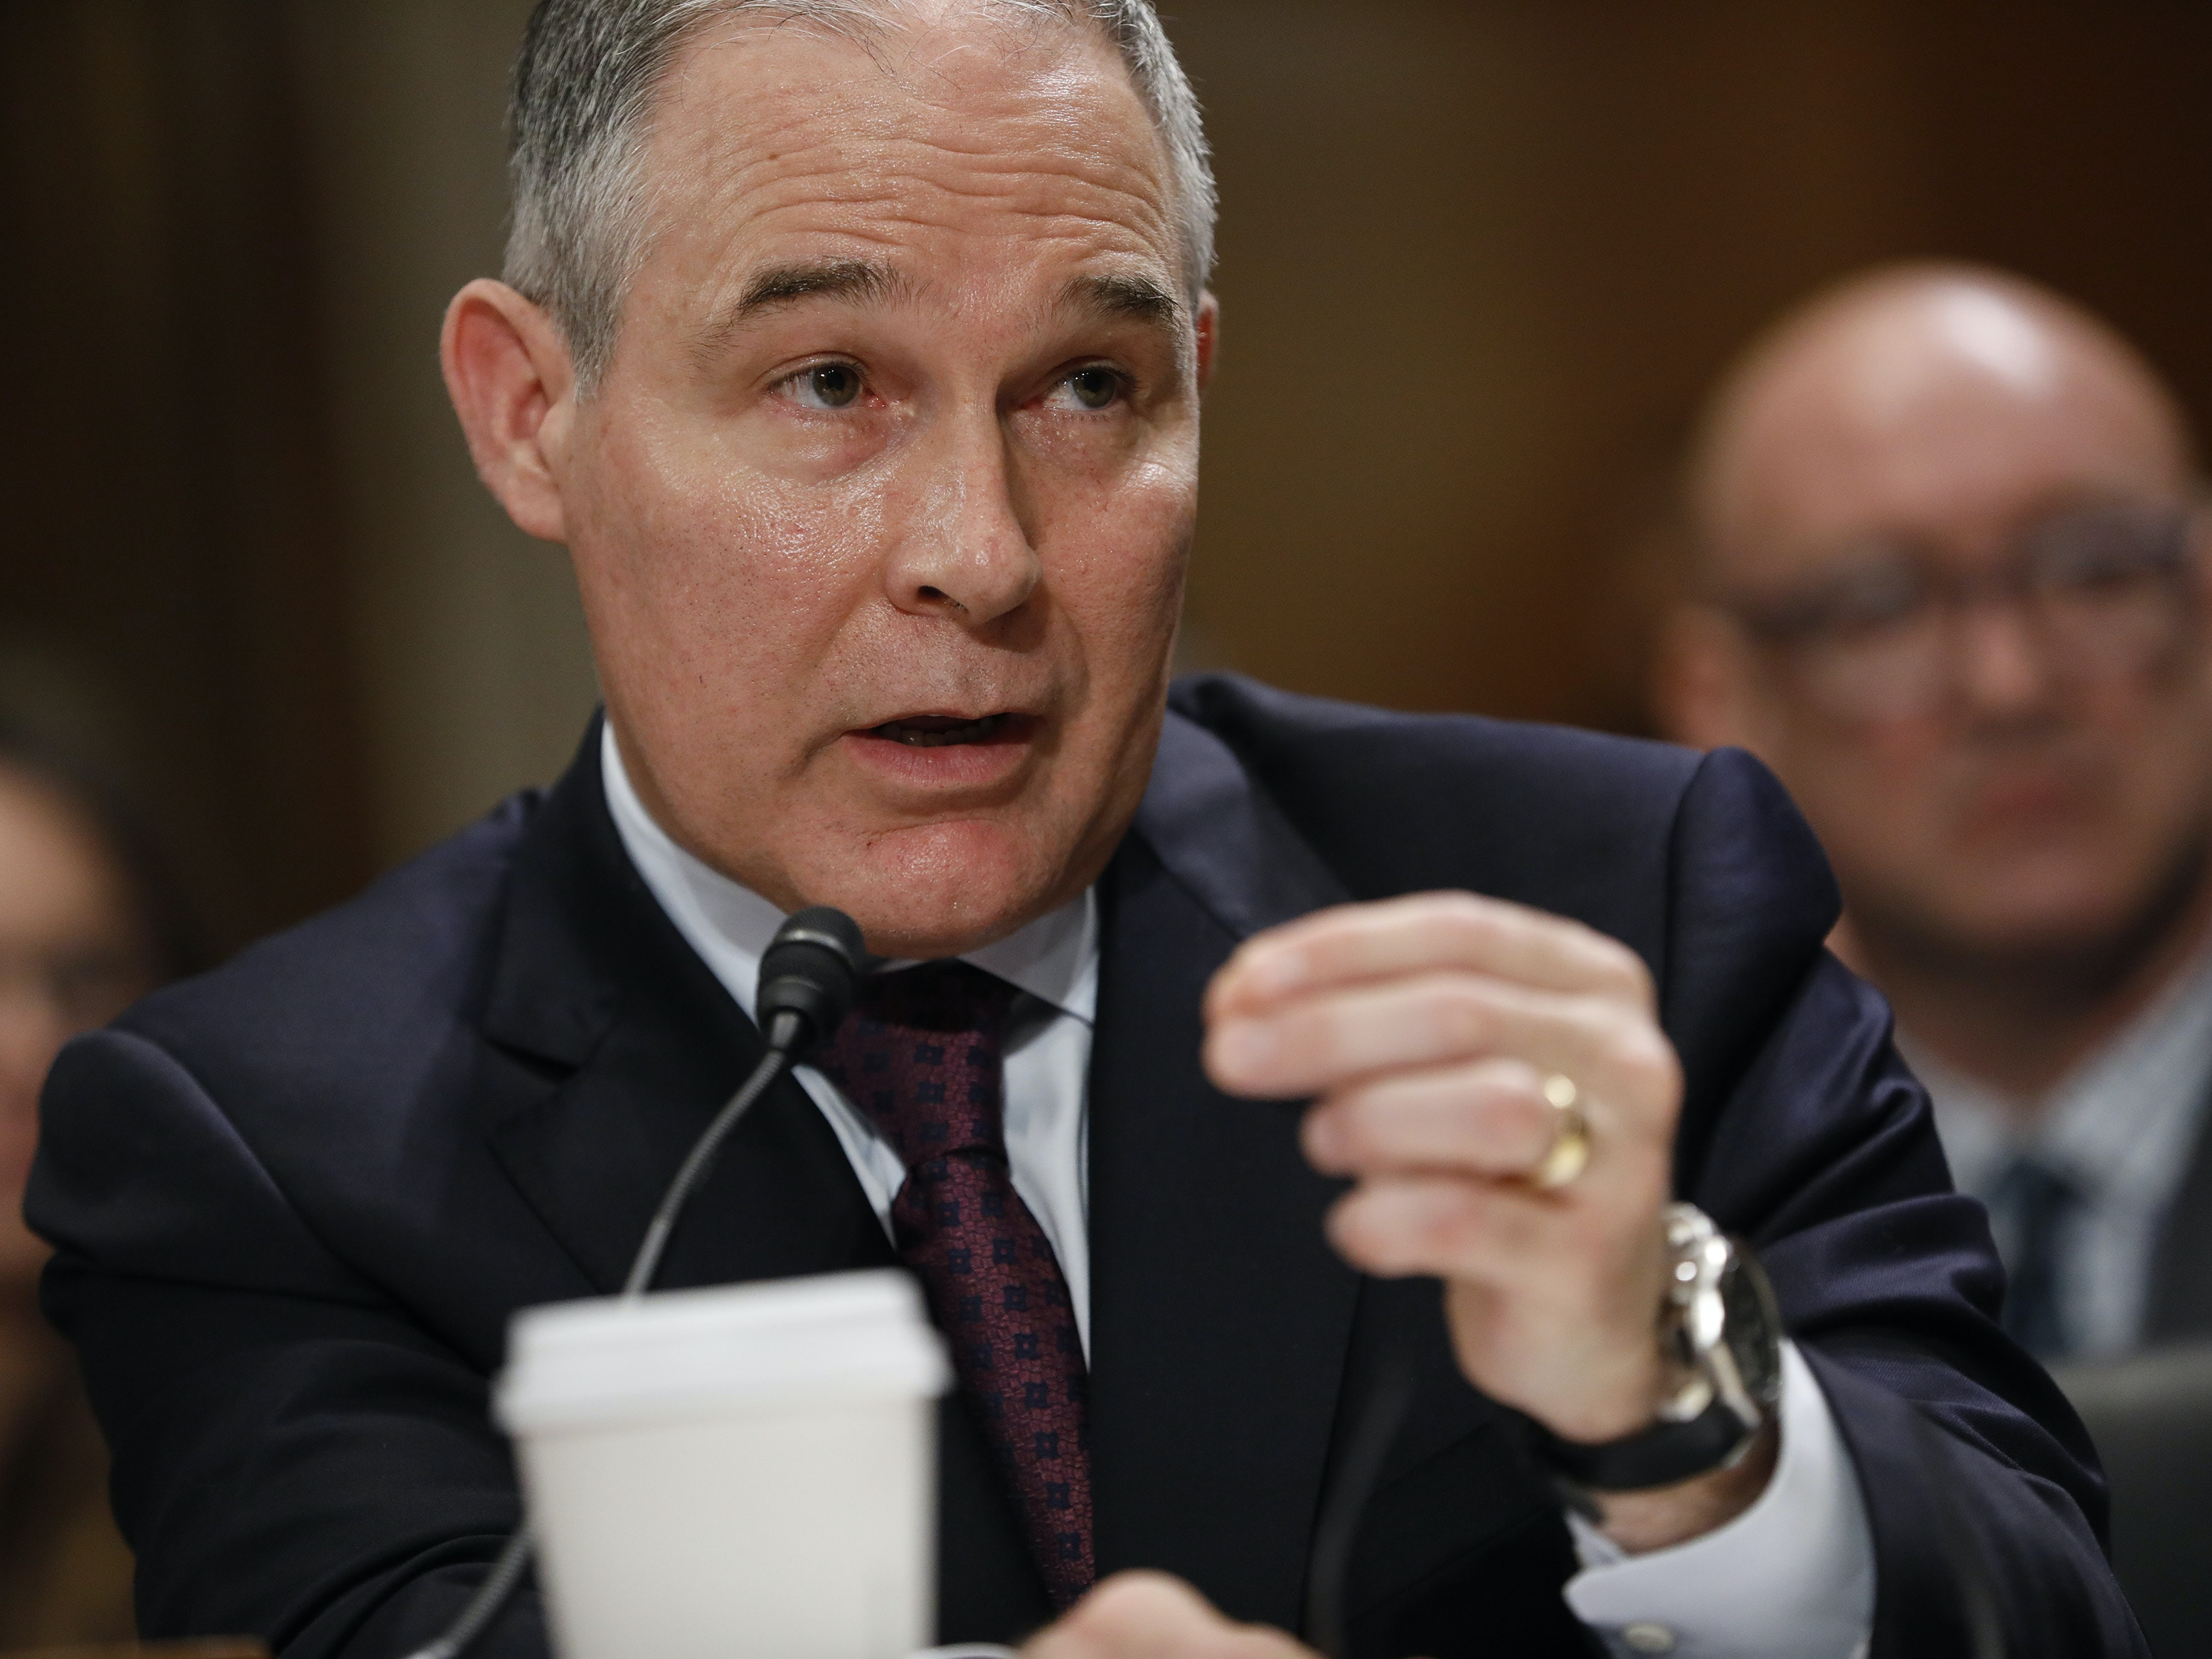 The One Public Health Problem Scott Pruitt Should Fix Came Up Today